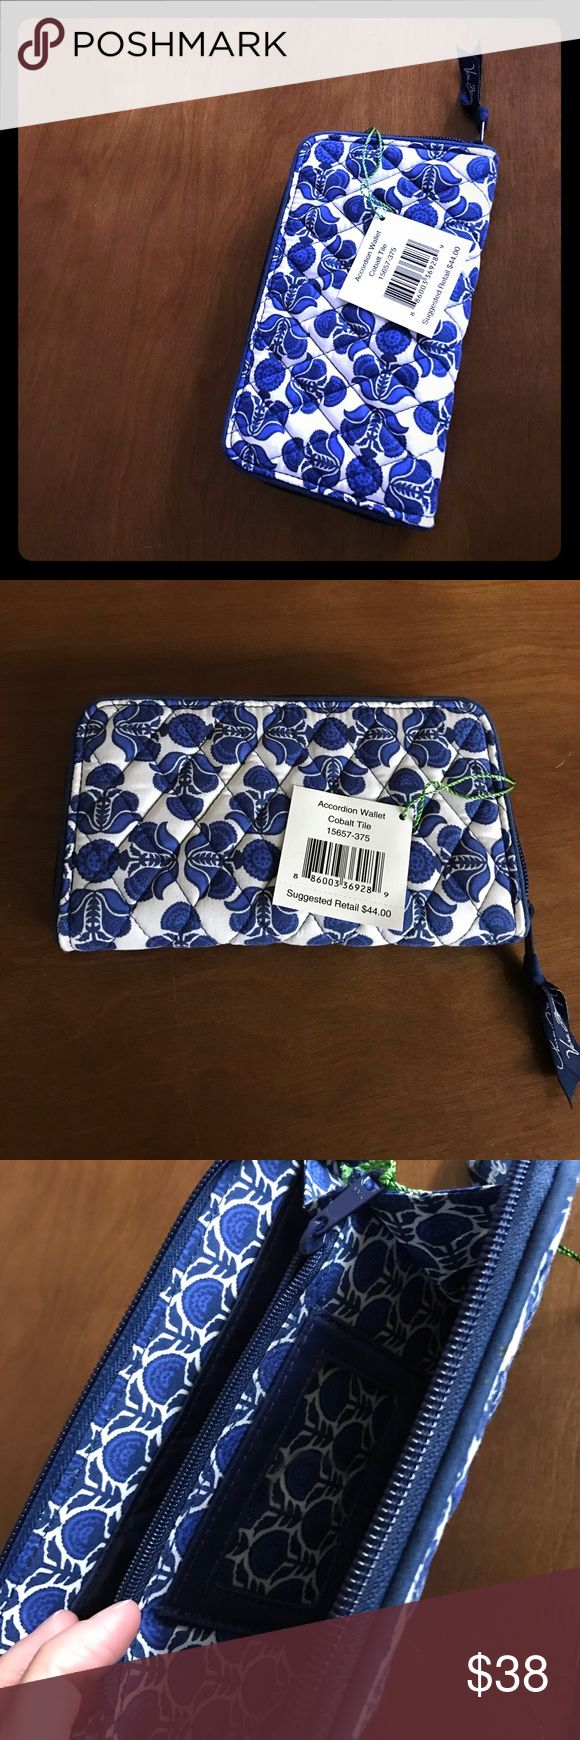 NWT Vera Bradley clutch Beautiful blue and white pattern brand new with tags.  Has a slot inside for license and also 12 credit card slots. Plus both sides could hold coupons or cash. And has a coin pouch in the middle! Very convenient and cute! Vera Bradley Bags Wallets